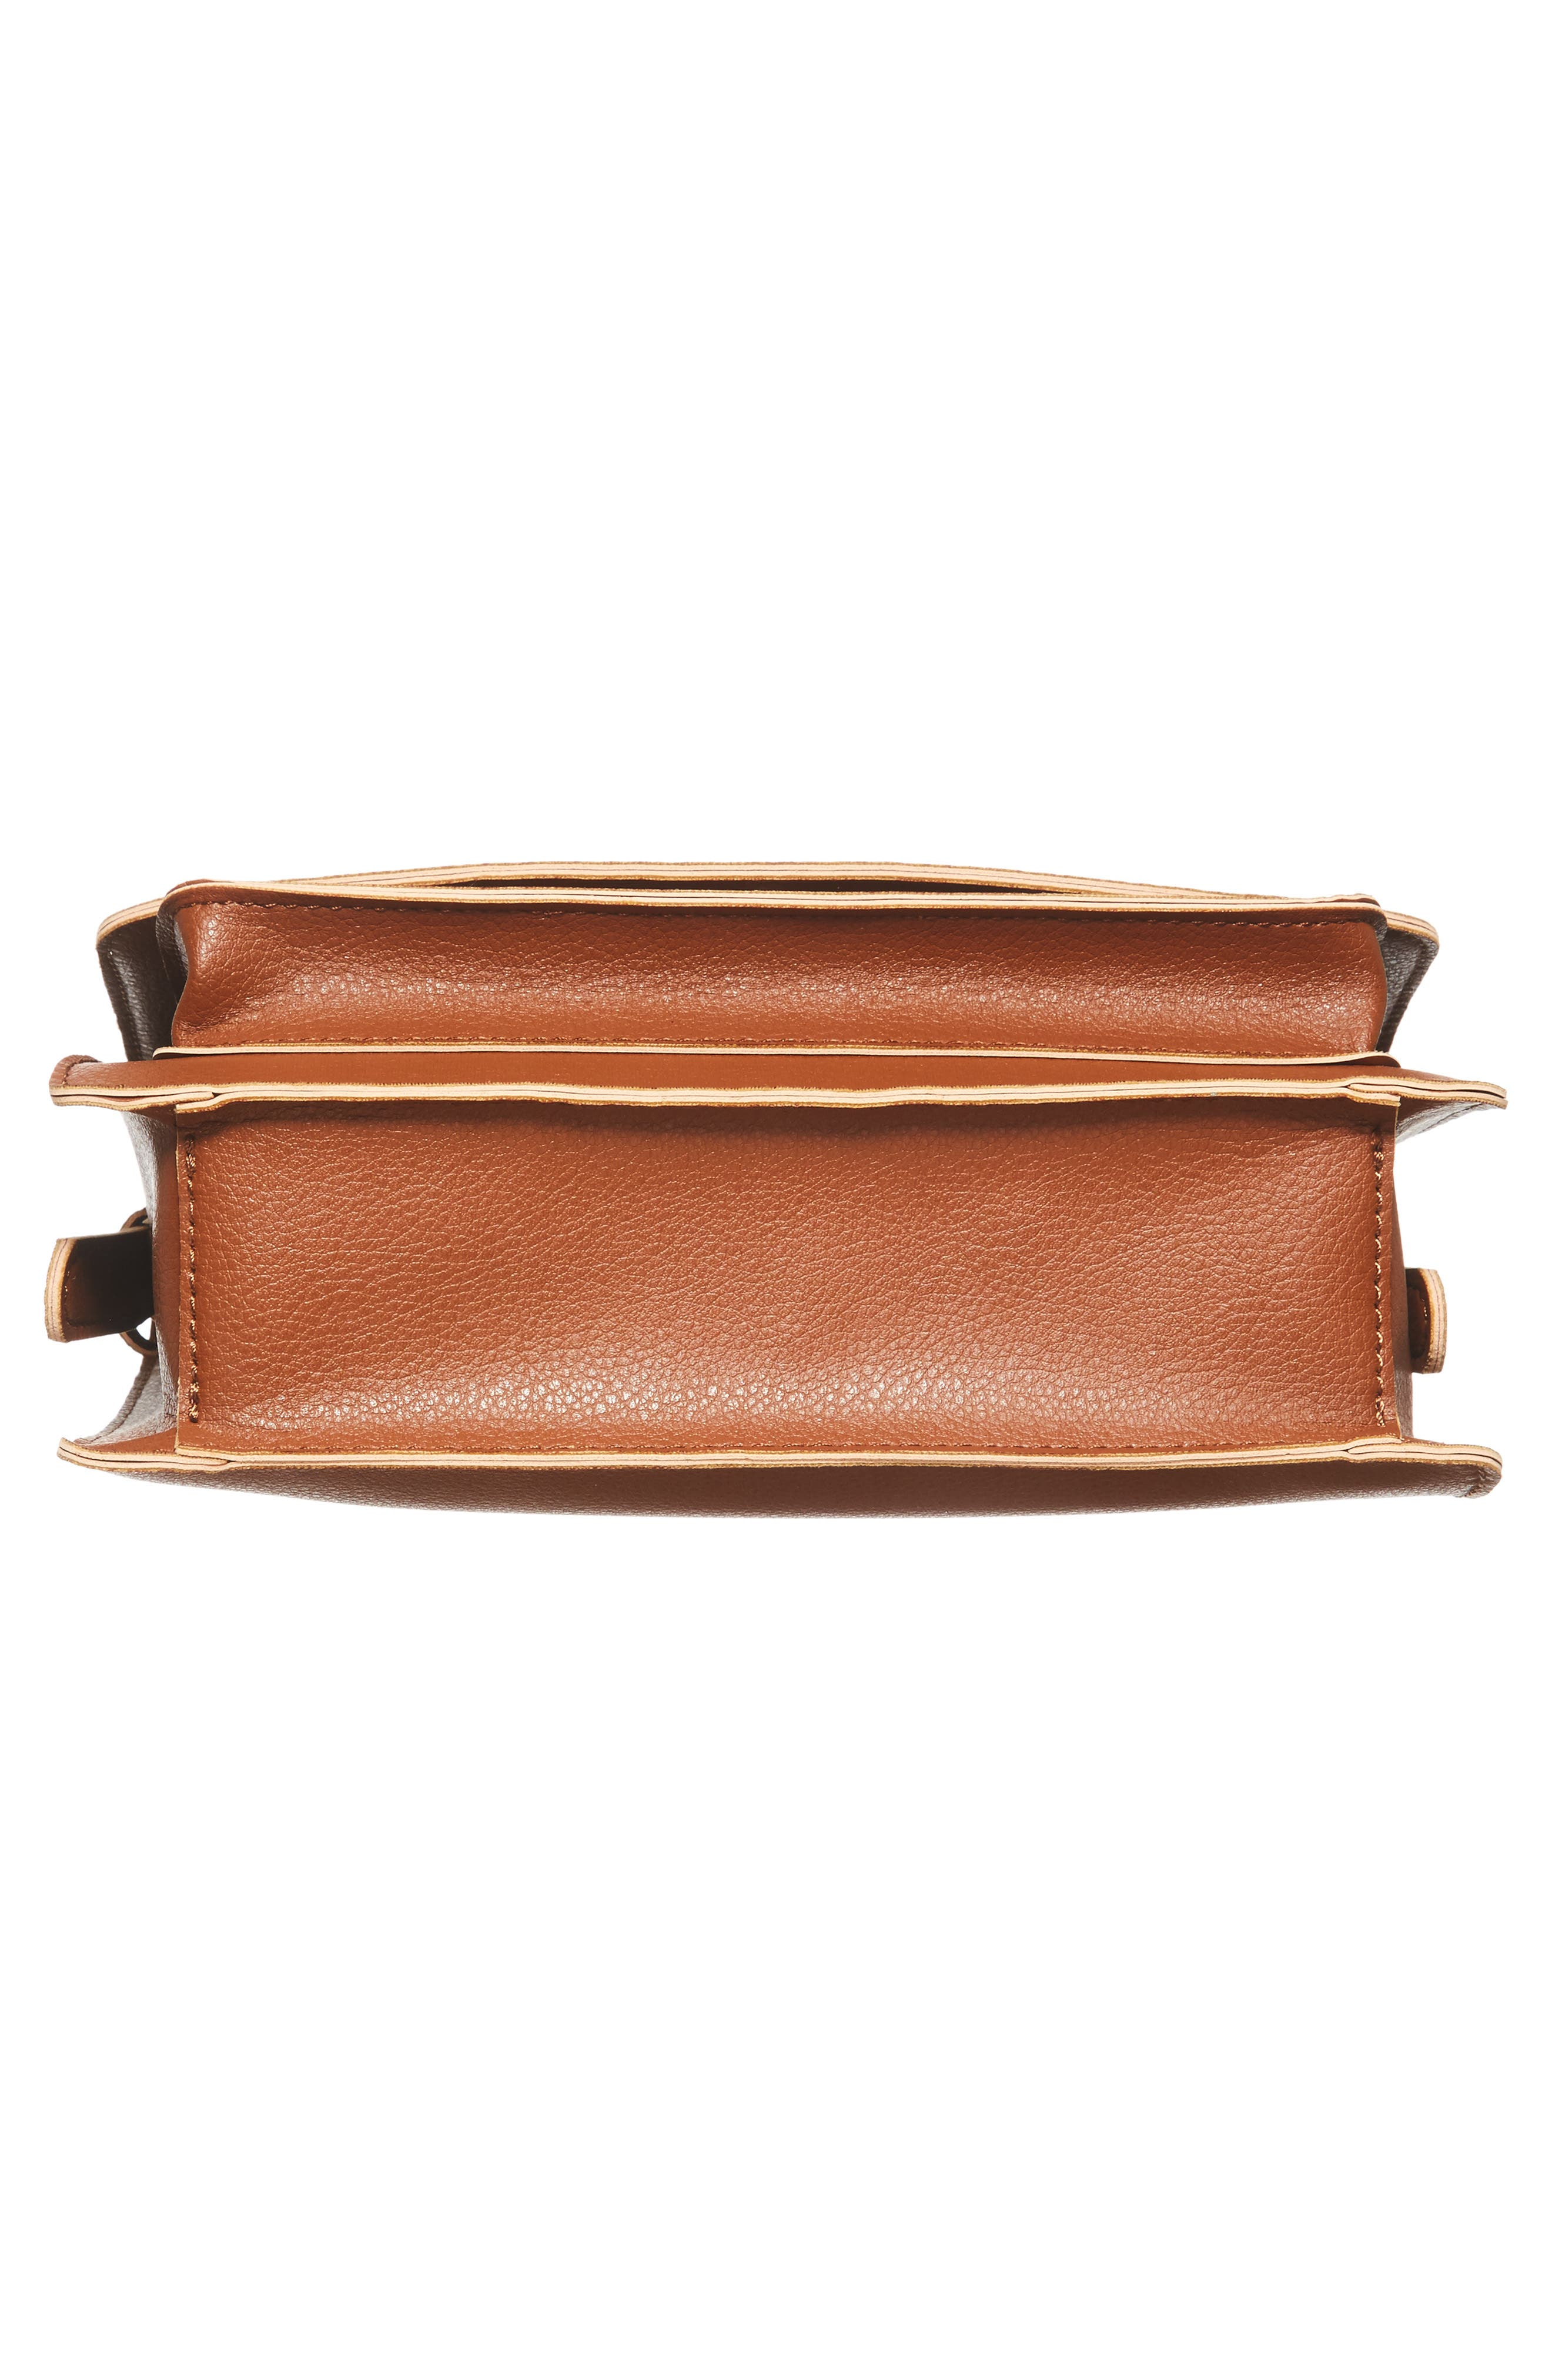 'Michelle' Faux Leather Crossbody Bag,                             Alternate thumbnail 6, color,                             New Cognac